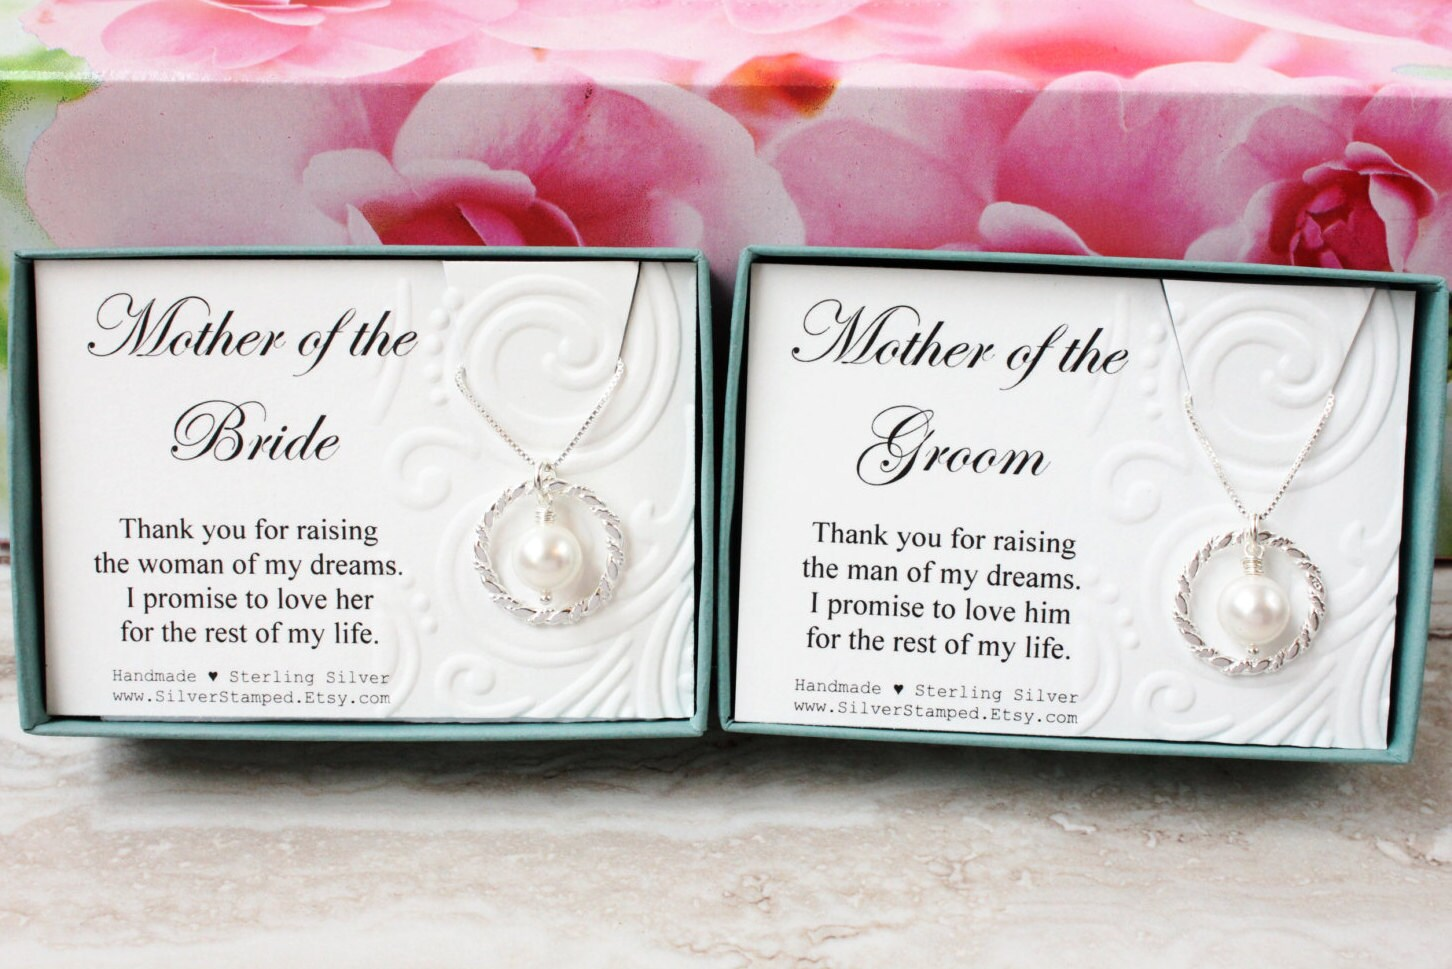 Mother Of The Groom Gift: Gift For Mother Of The Groom And Mother Of The By